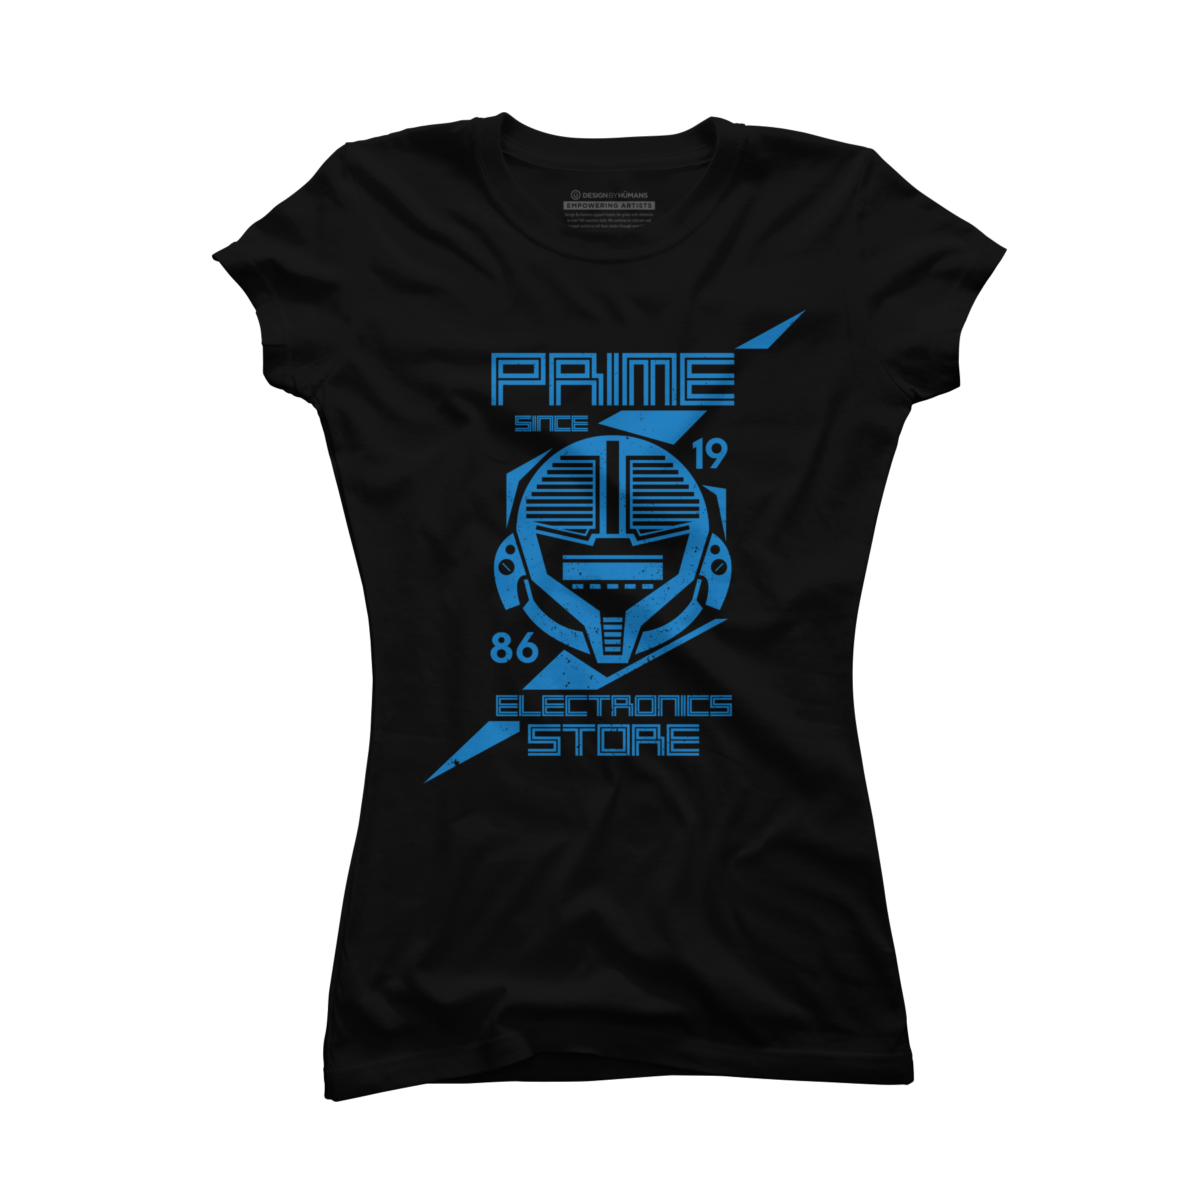 Prime Electronics Store Women's T-Shirt Prime Electronics Store is a cozy ring spun cotton Black shirt designed by JRBERGER. This Women's shirt design is featured in games designs. Shop DesignByHumans.com for the best selection of cool graphic tees, tank tops, sweatshirts, notebooks, phone cases, and art prints.